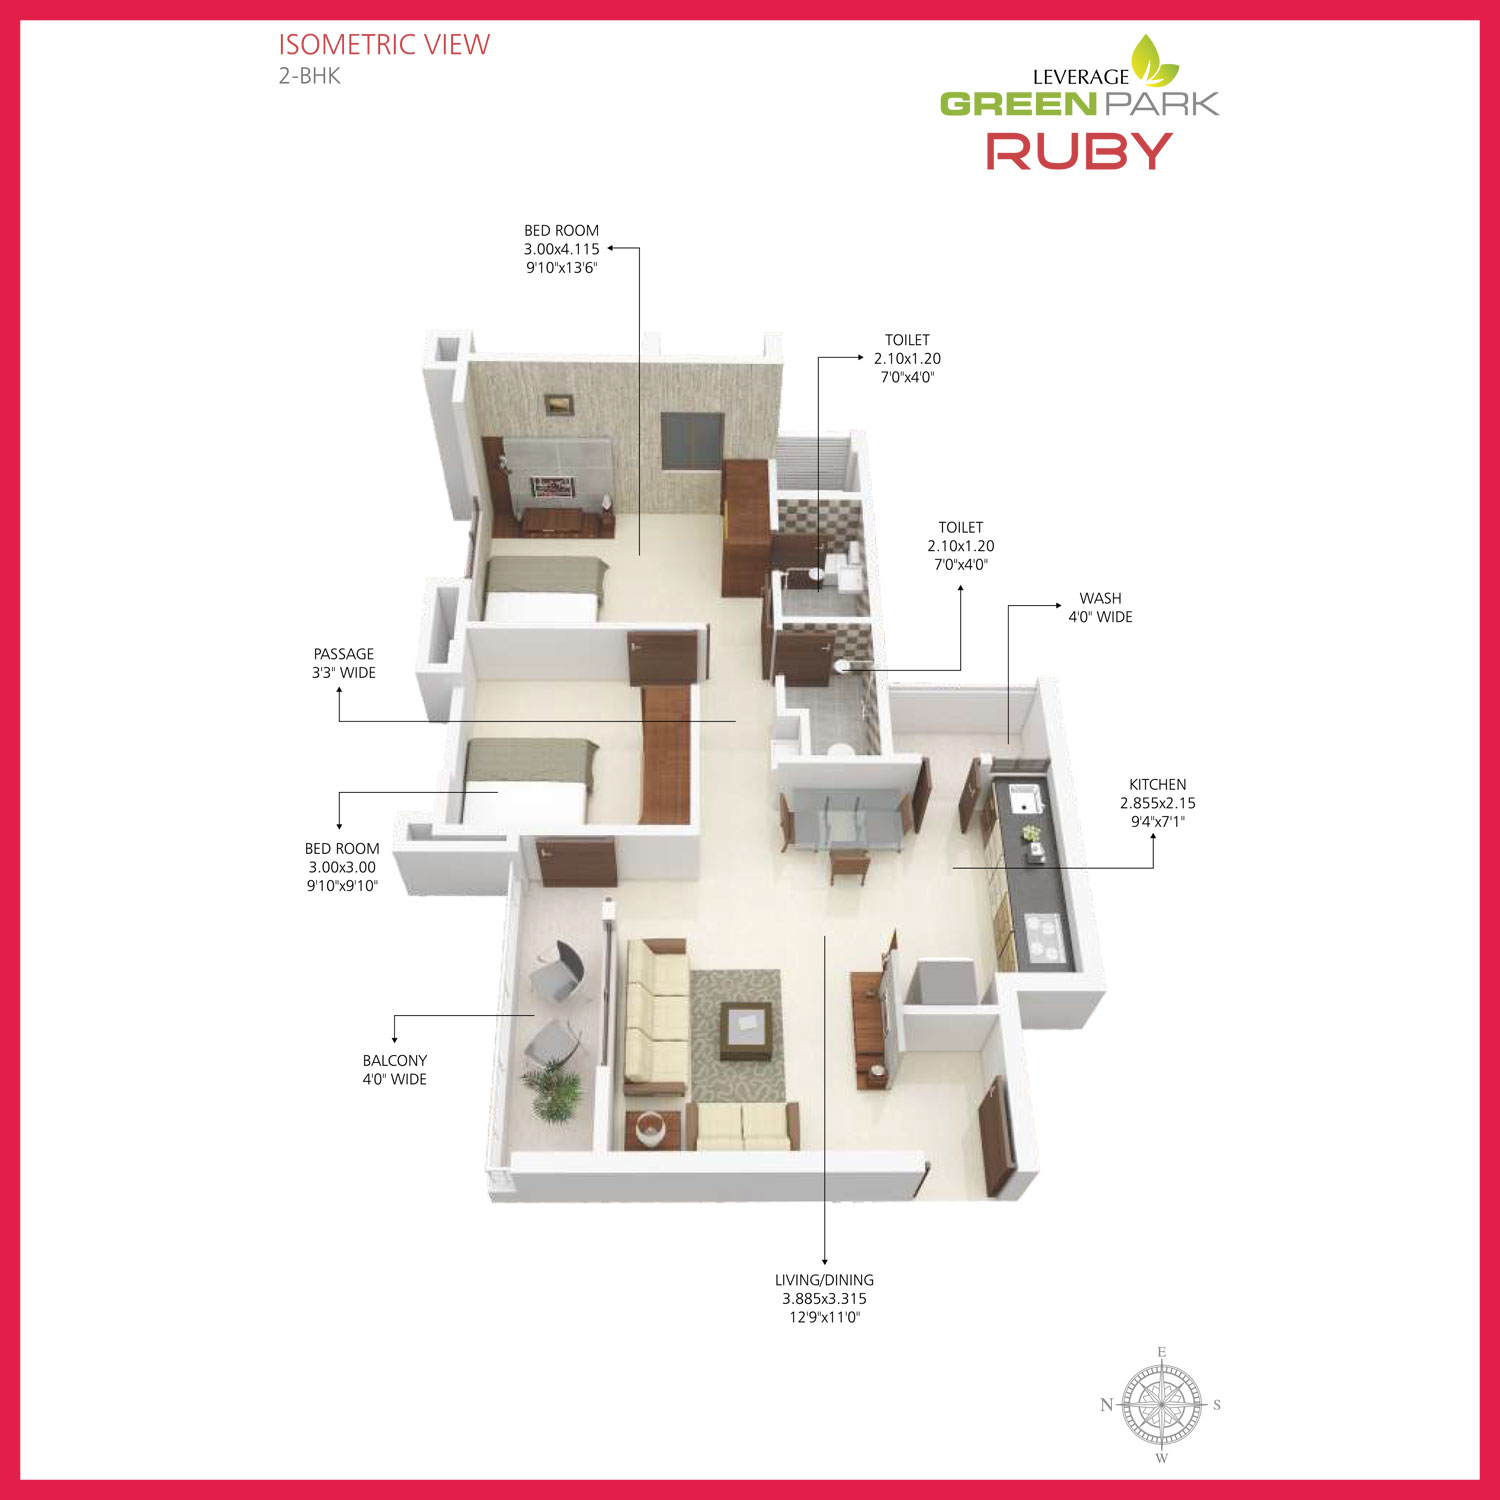 ruby-2bhk-isometric-view-1